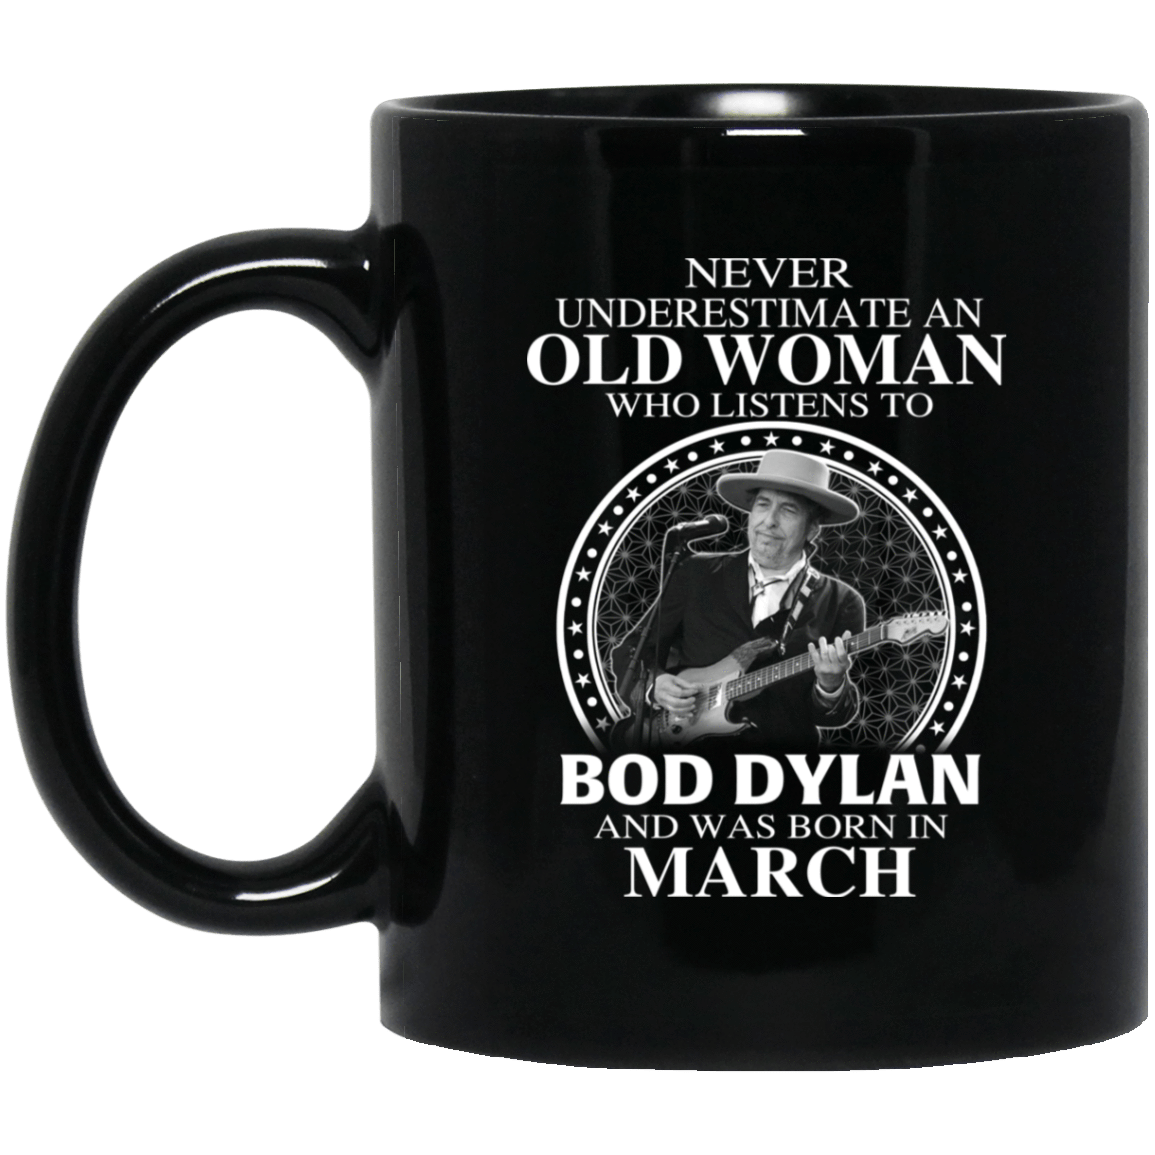 An Old Woman Who Listens To Bob Dylan And Was Born In March Mug 1065-10181-76154136-49307 - Tee Ript